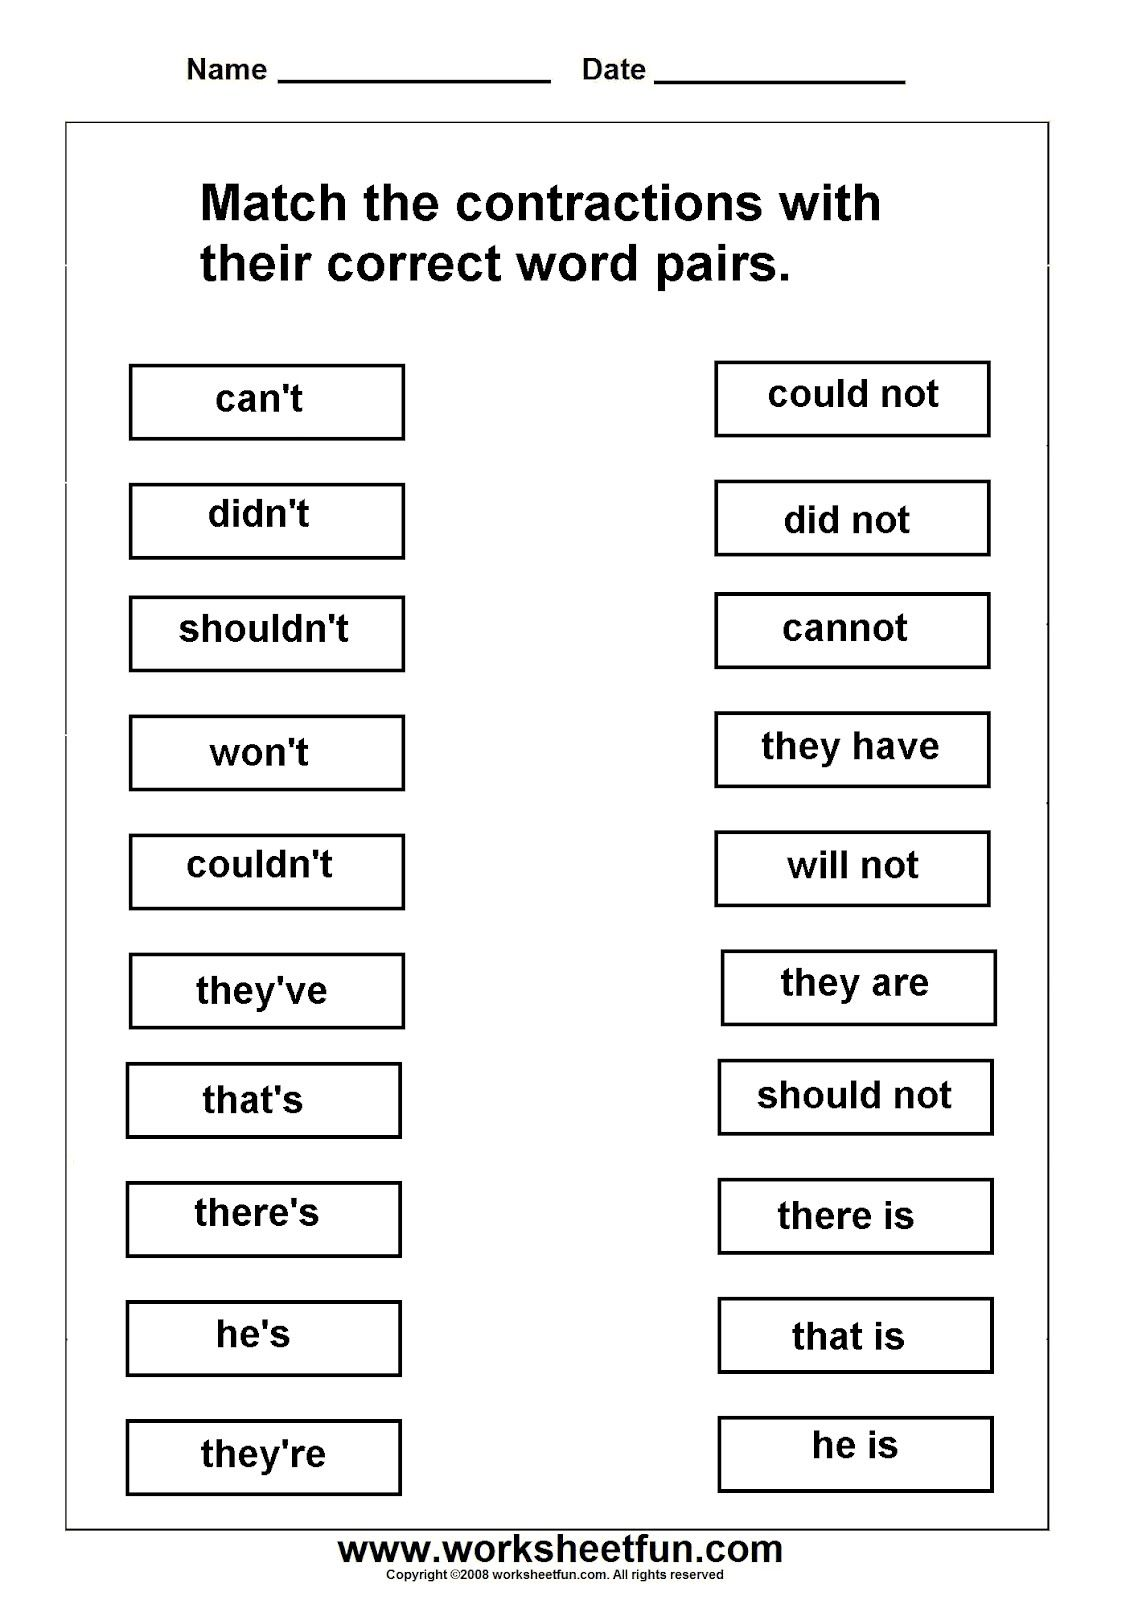 Worksheets Free Printable Contraction Worksheets worksheets on contractions school pinterest can t didn shouldn won couldn they ve